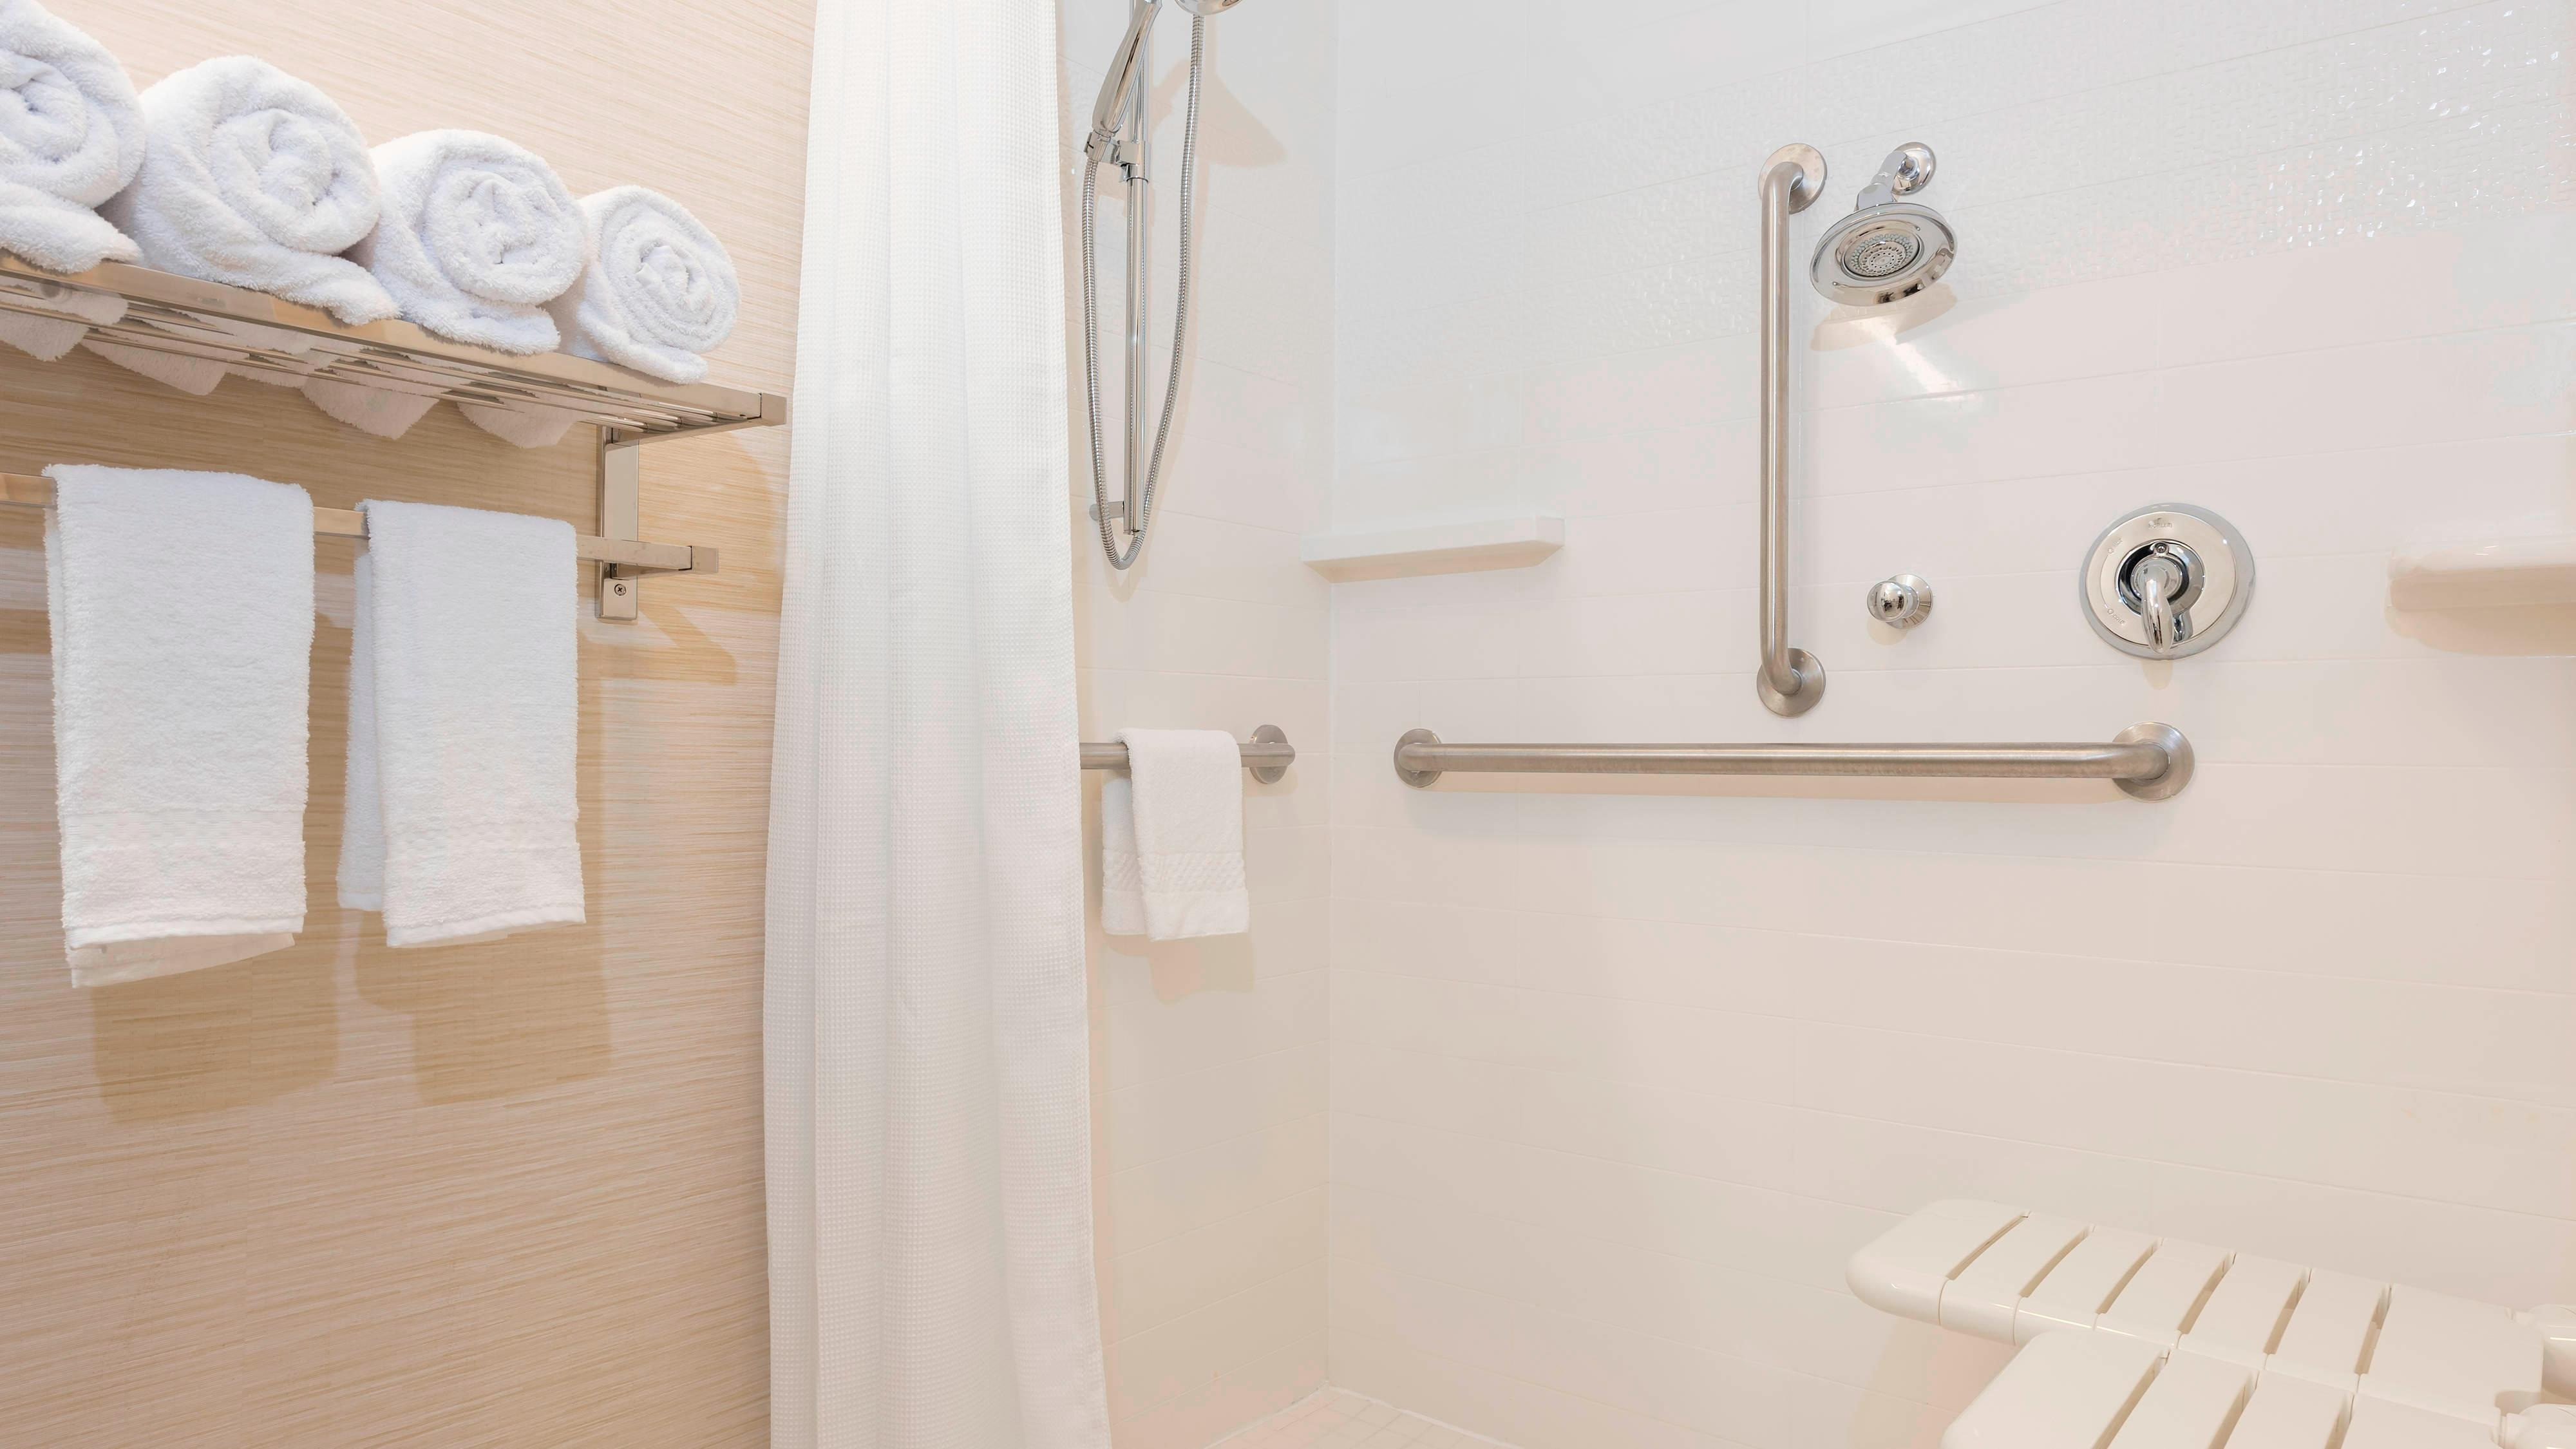 Fairfield Inn & Suites Fredericksburg Accessible Suite Bathroom